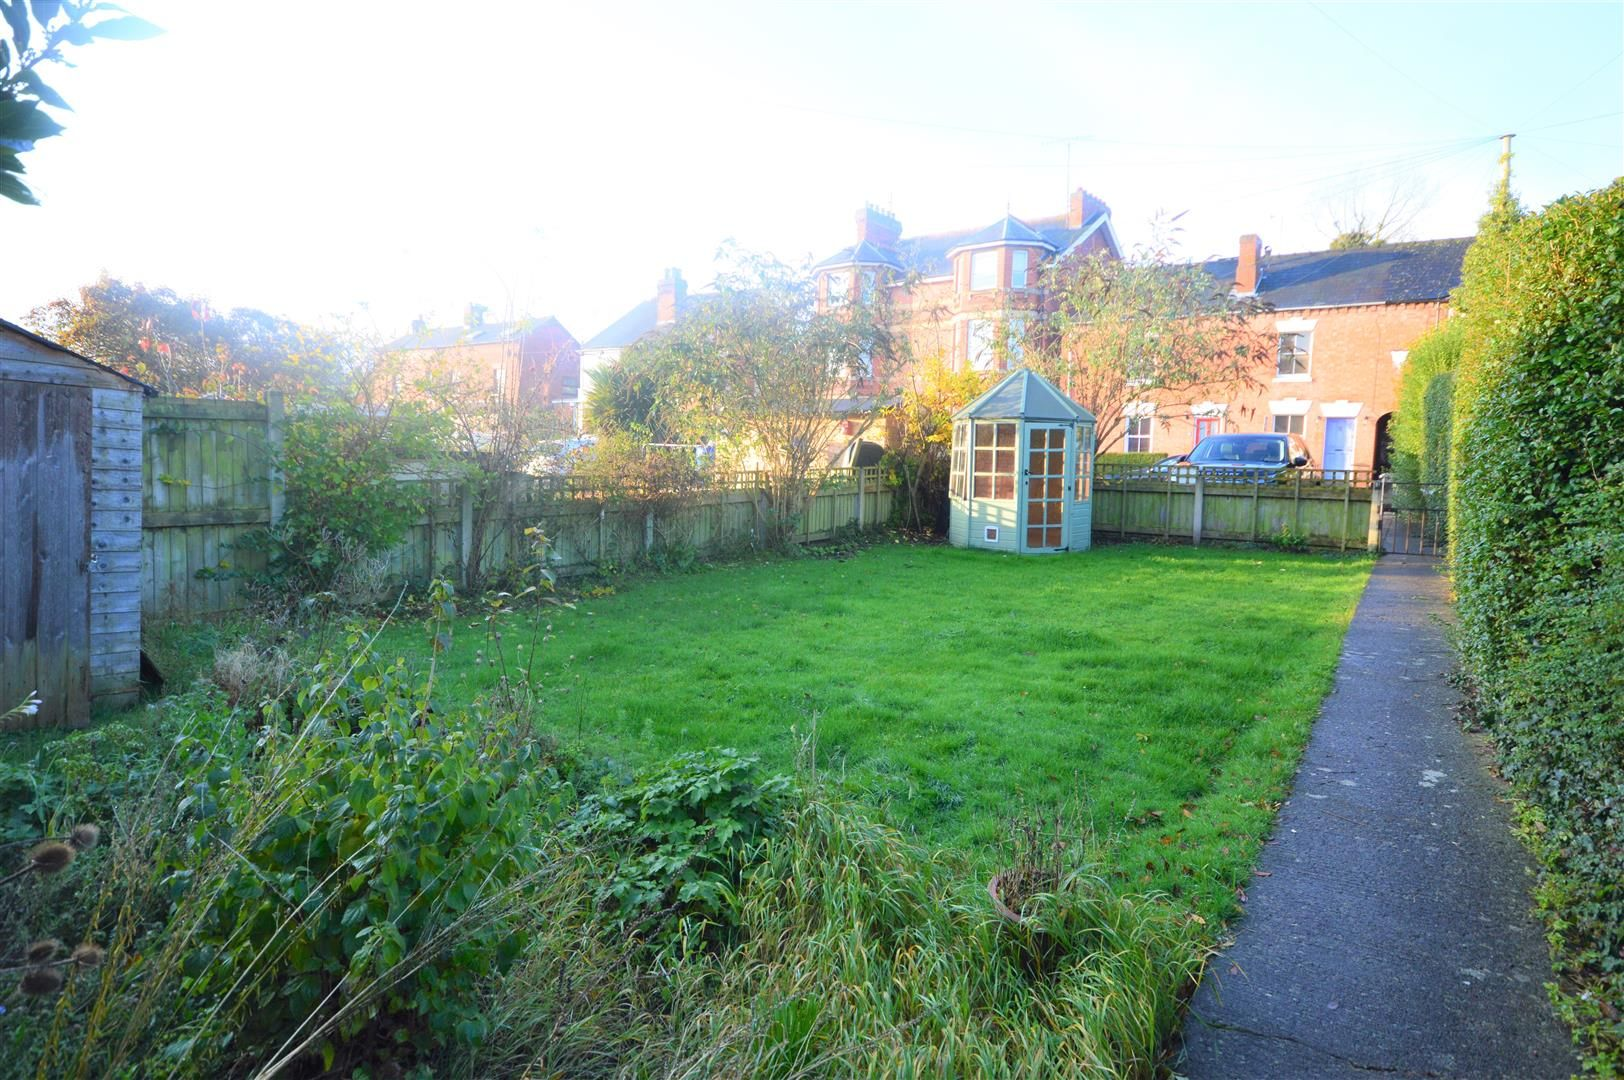 3 bed end-of-terrace for sale in Leominster 10